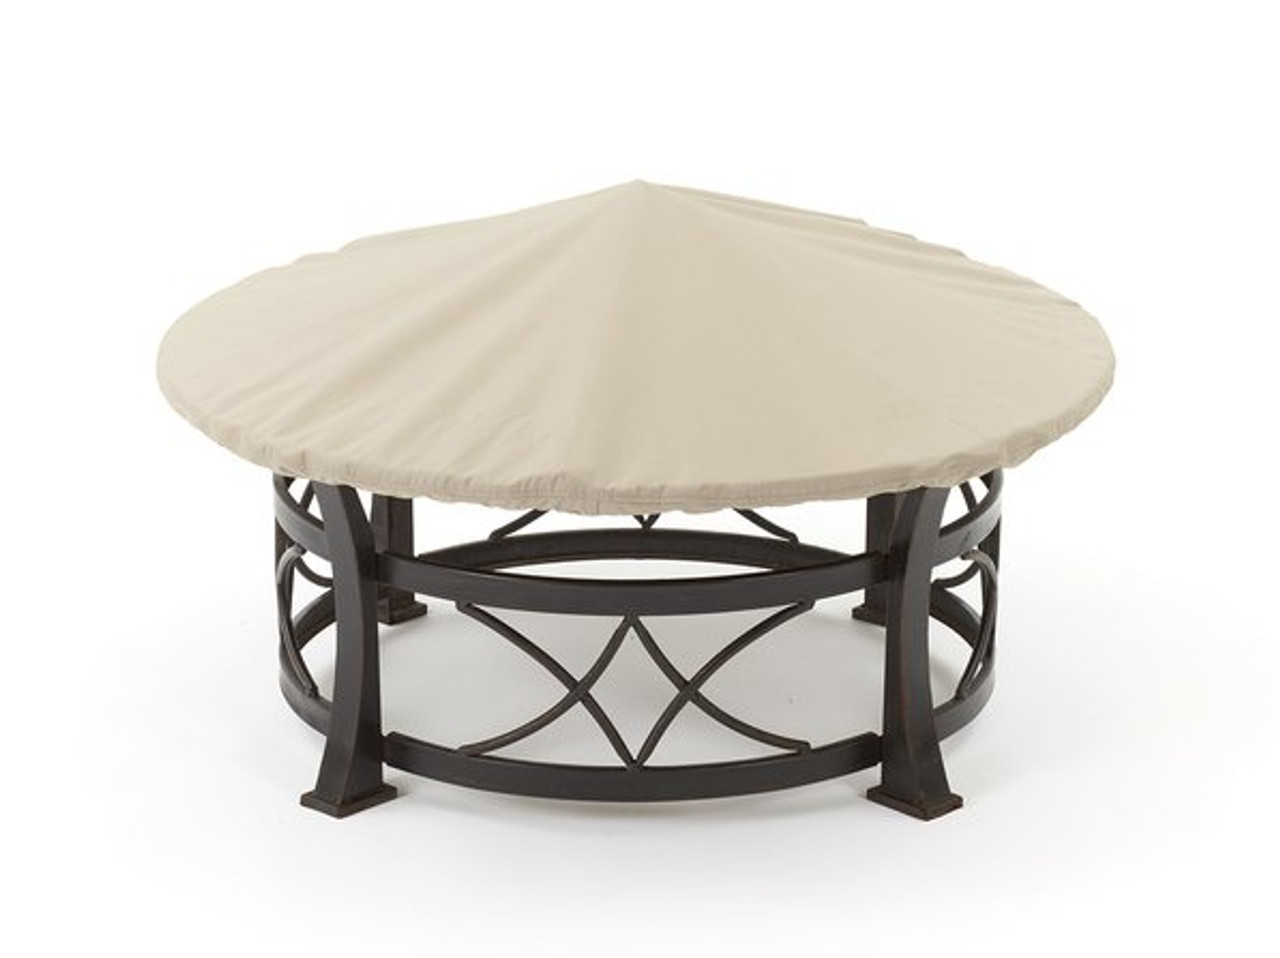 Stupendous Round Fire Pit Cover Durable Khaki Or Charcoal 54 60 Inches F52 Ibusinesslaw Wood Chair Design Ideas Ibusinesslaworg